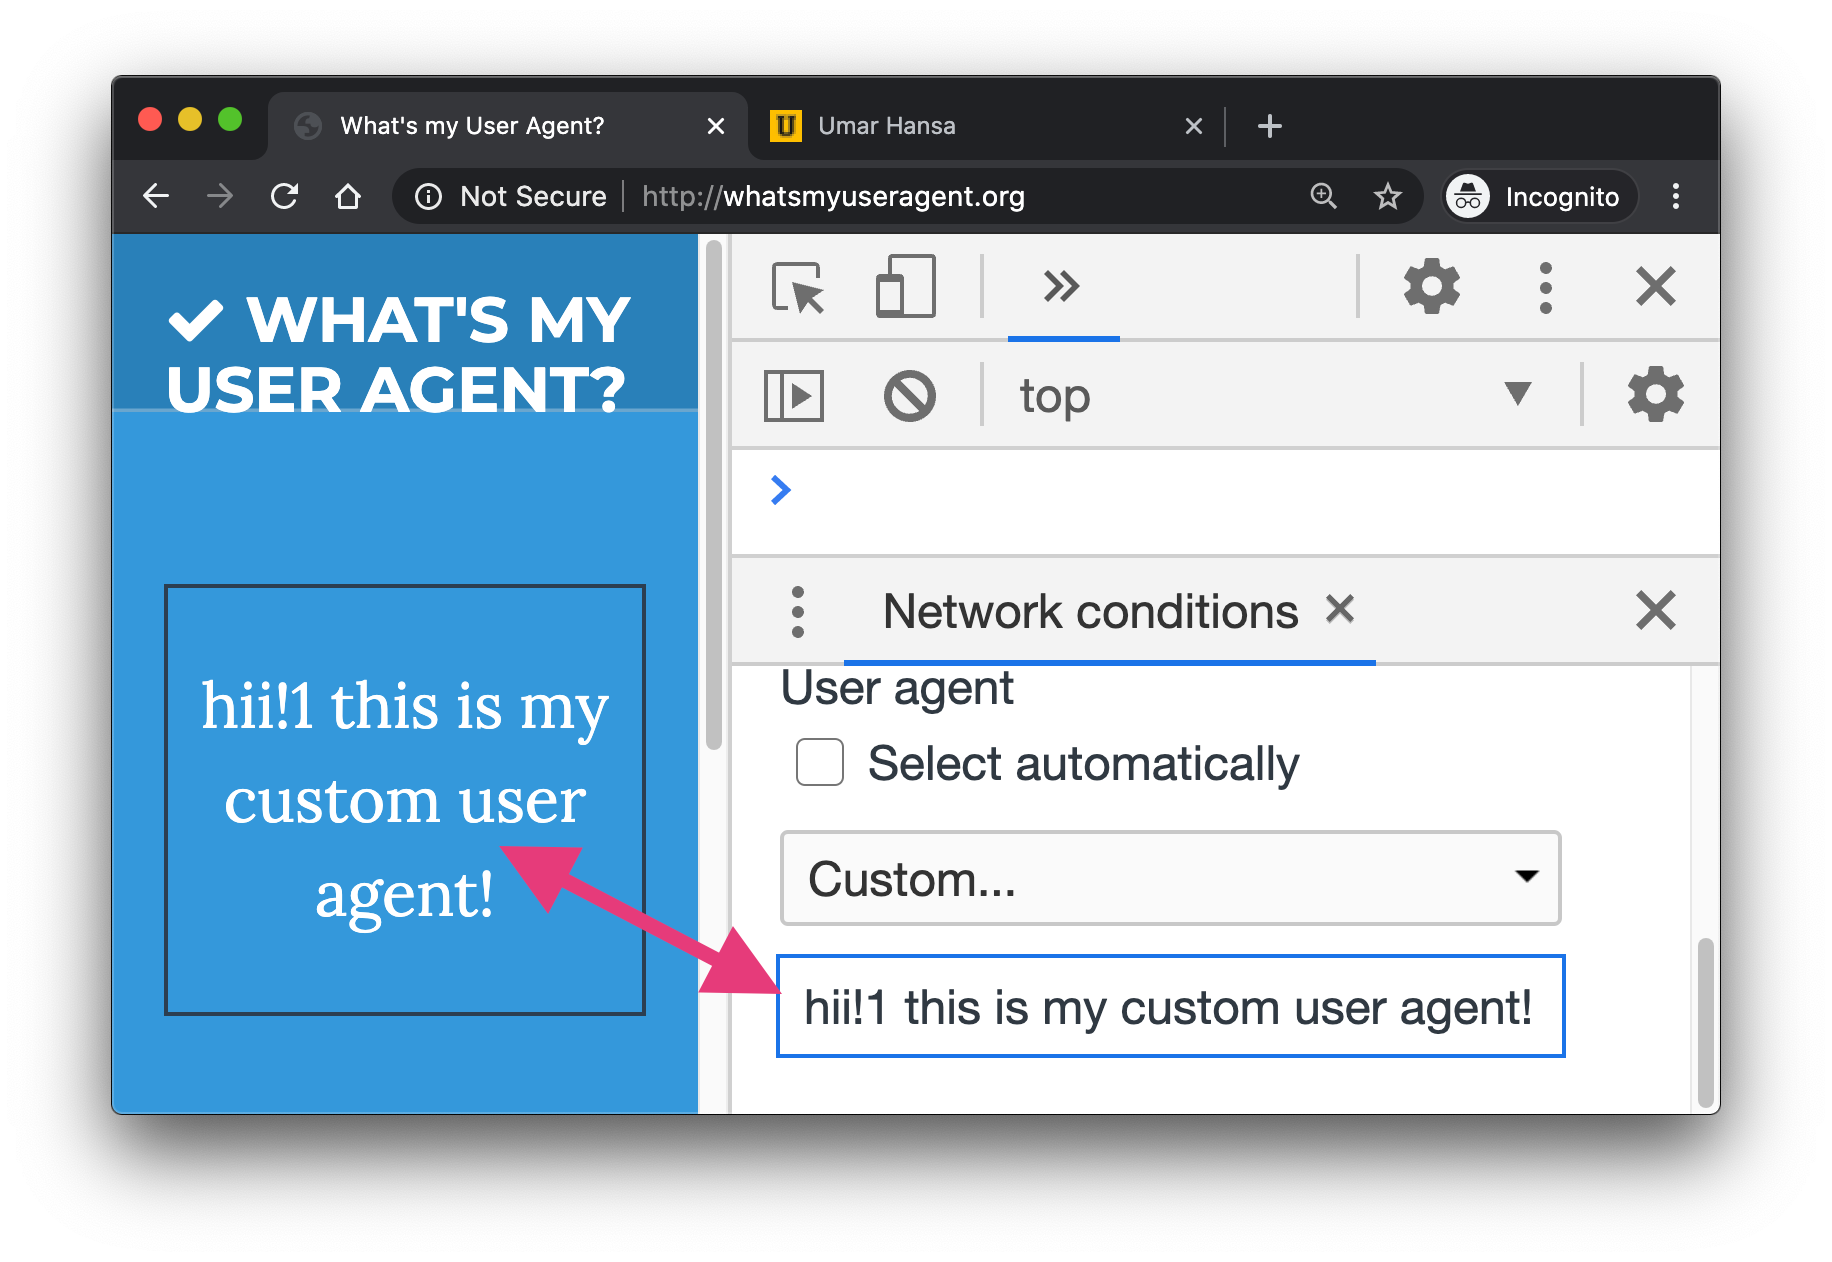 A screenshot showing how to set a custom user agent in DevTools